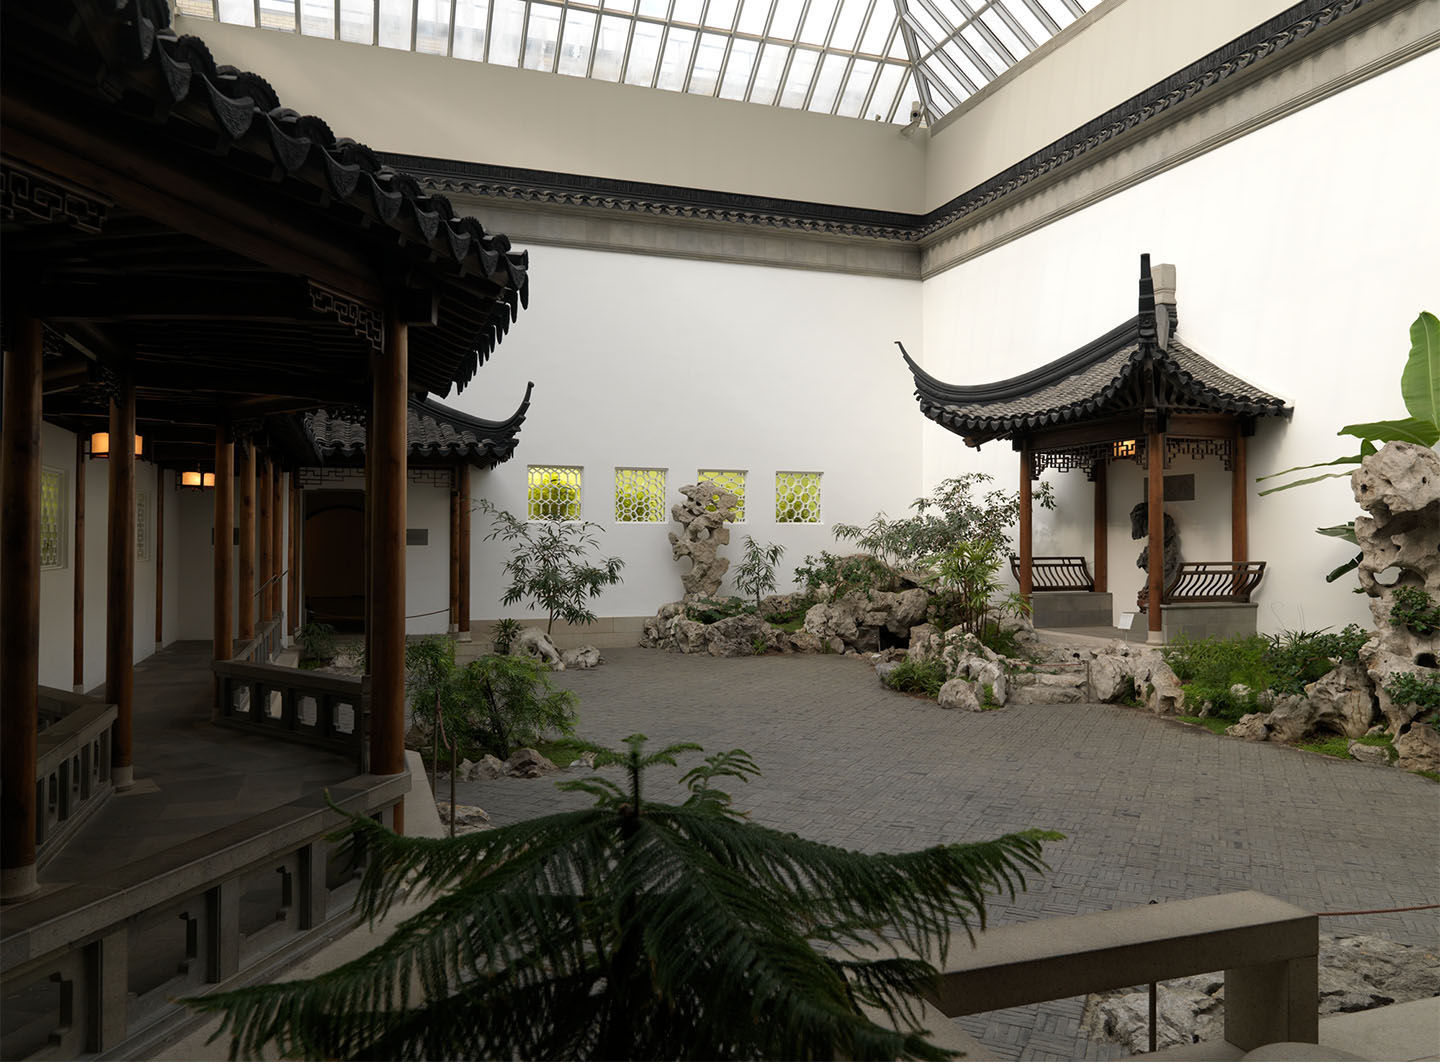 Asian Garden Art Part - 24: An Interior Courtyard With Pagodas, Plantings, Ornamental Rocks, And A Fish  Pond